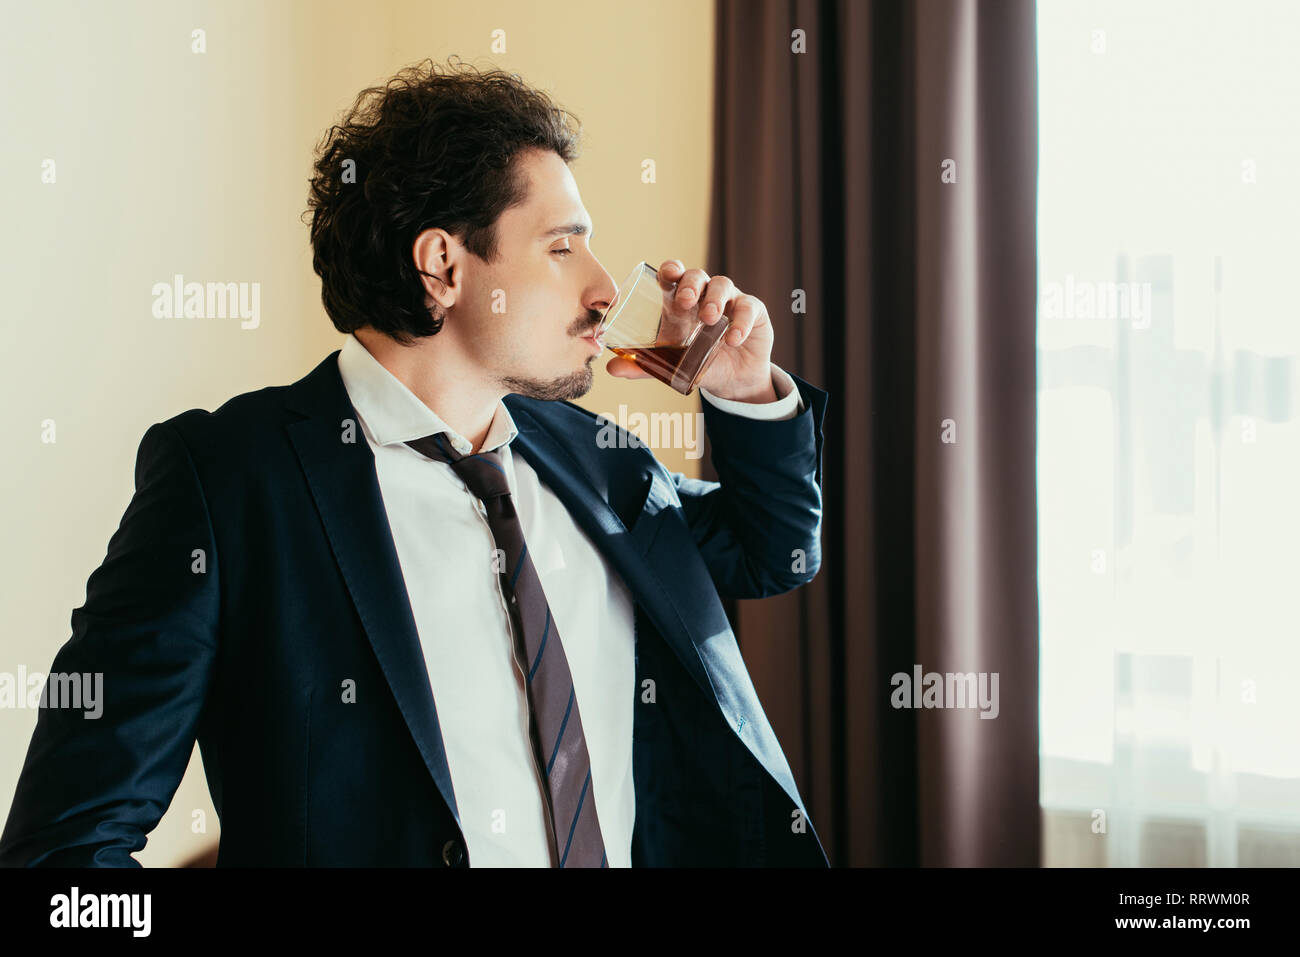 businessman in formal wear drinking whiskey from glass in hotel room - Stock Image